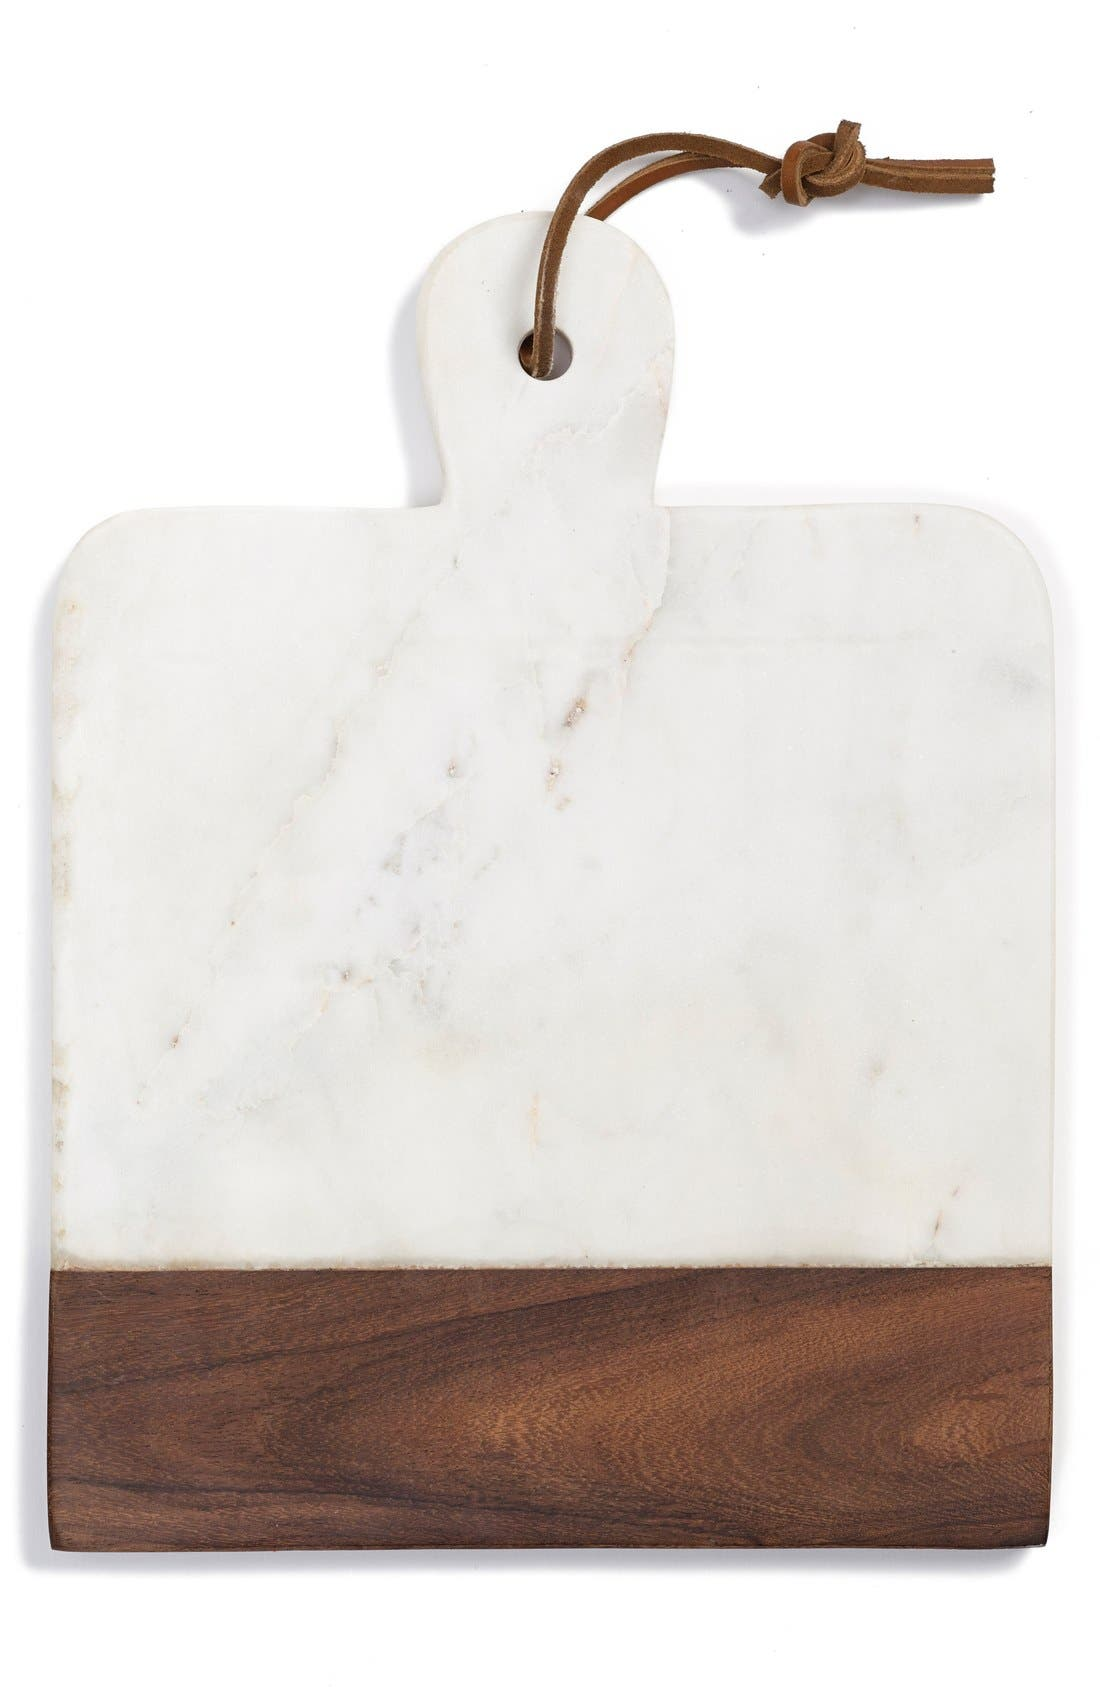 Marble & Wood Paddle Board,                         Main,                         color, 100